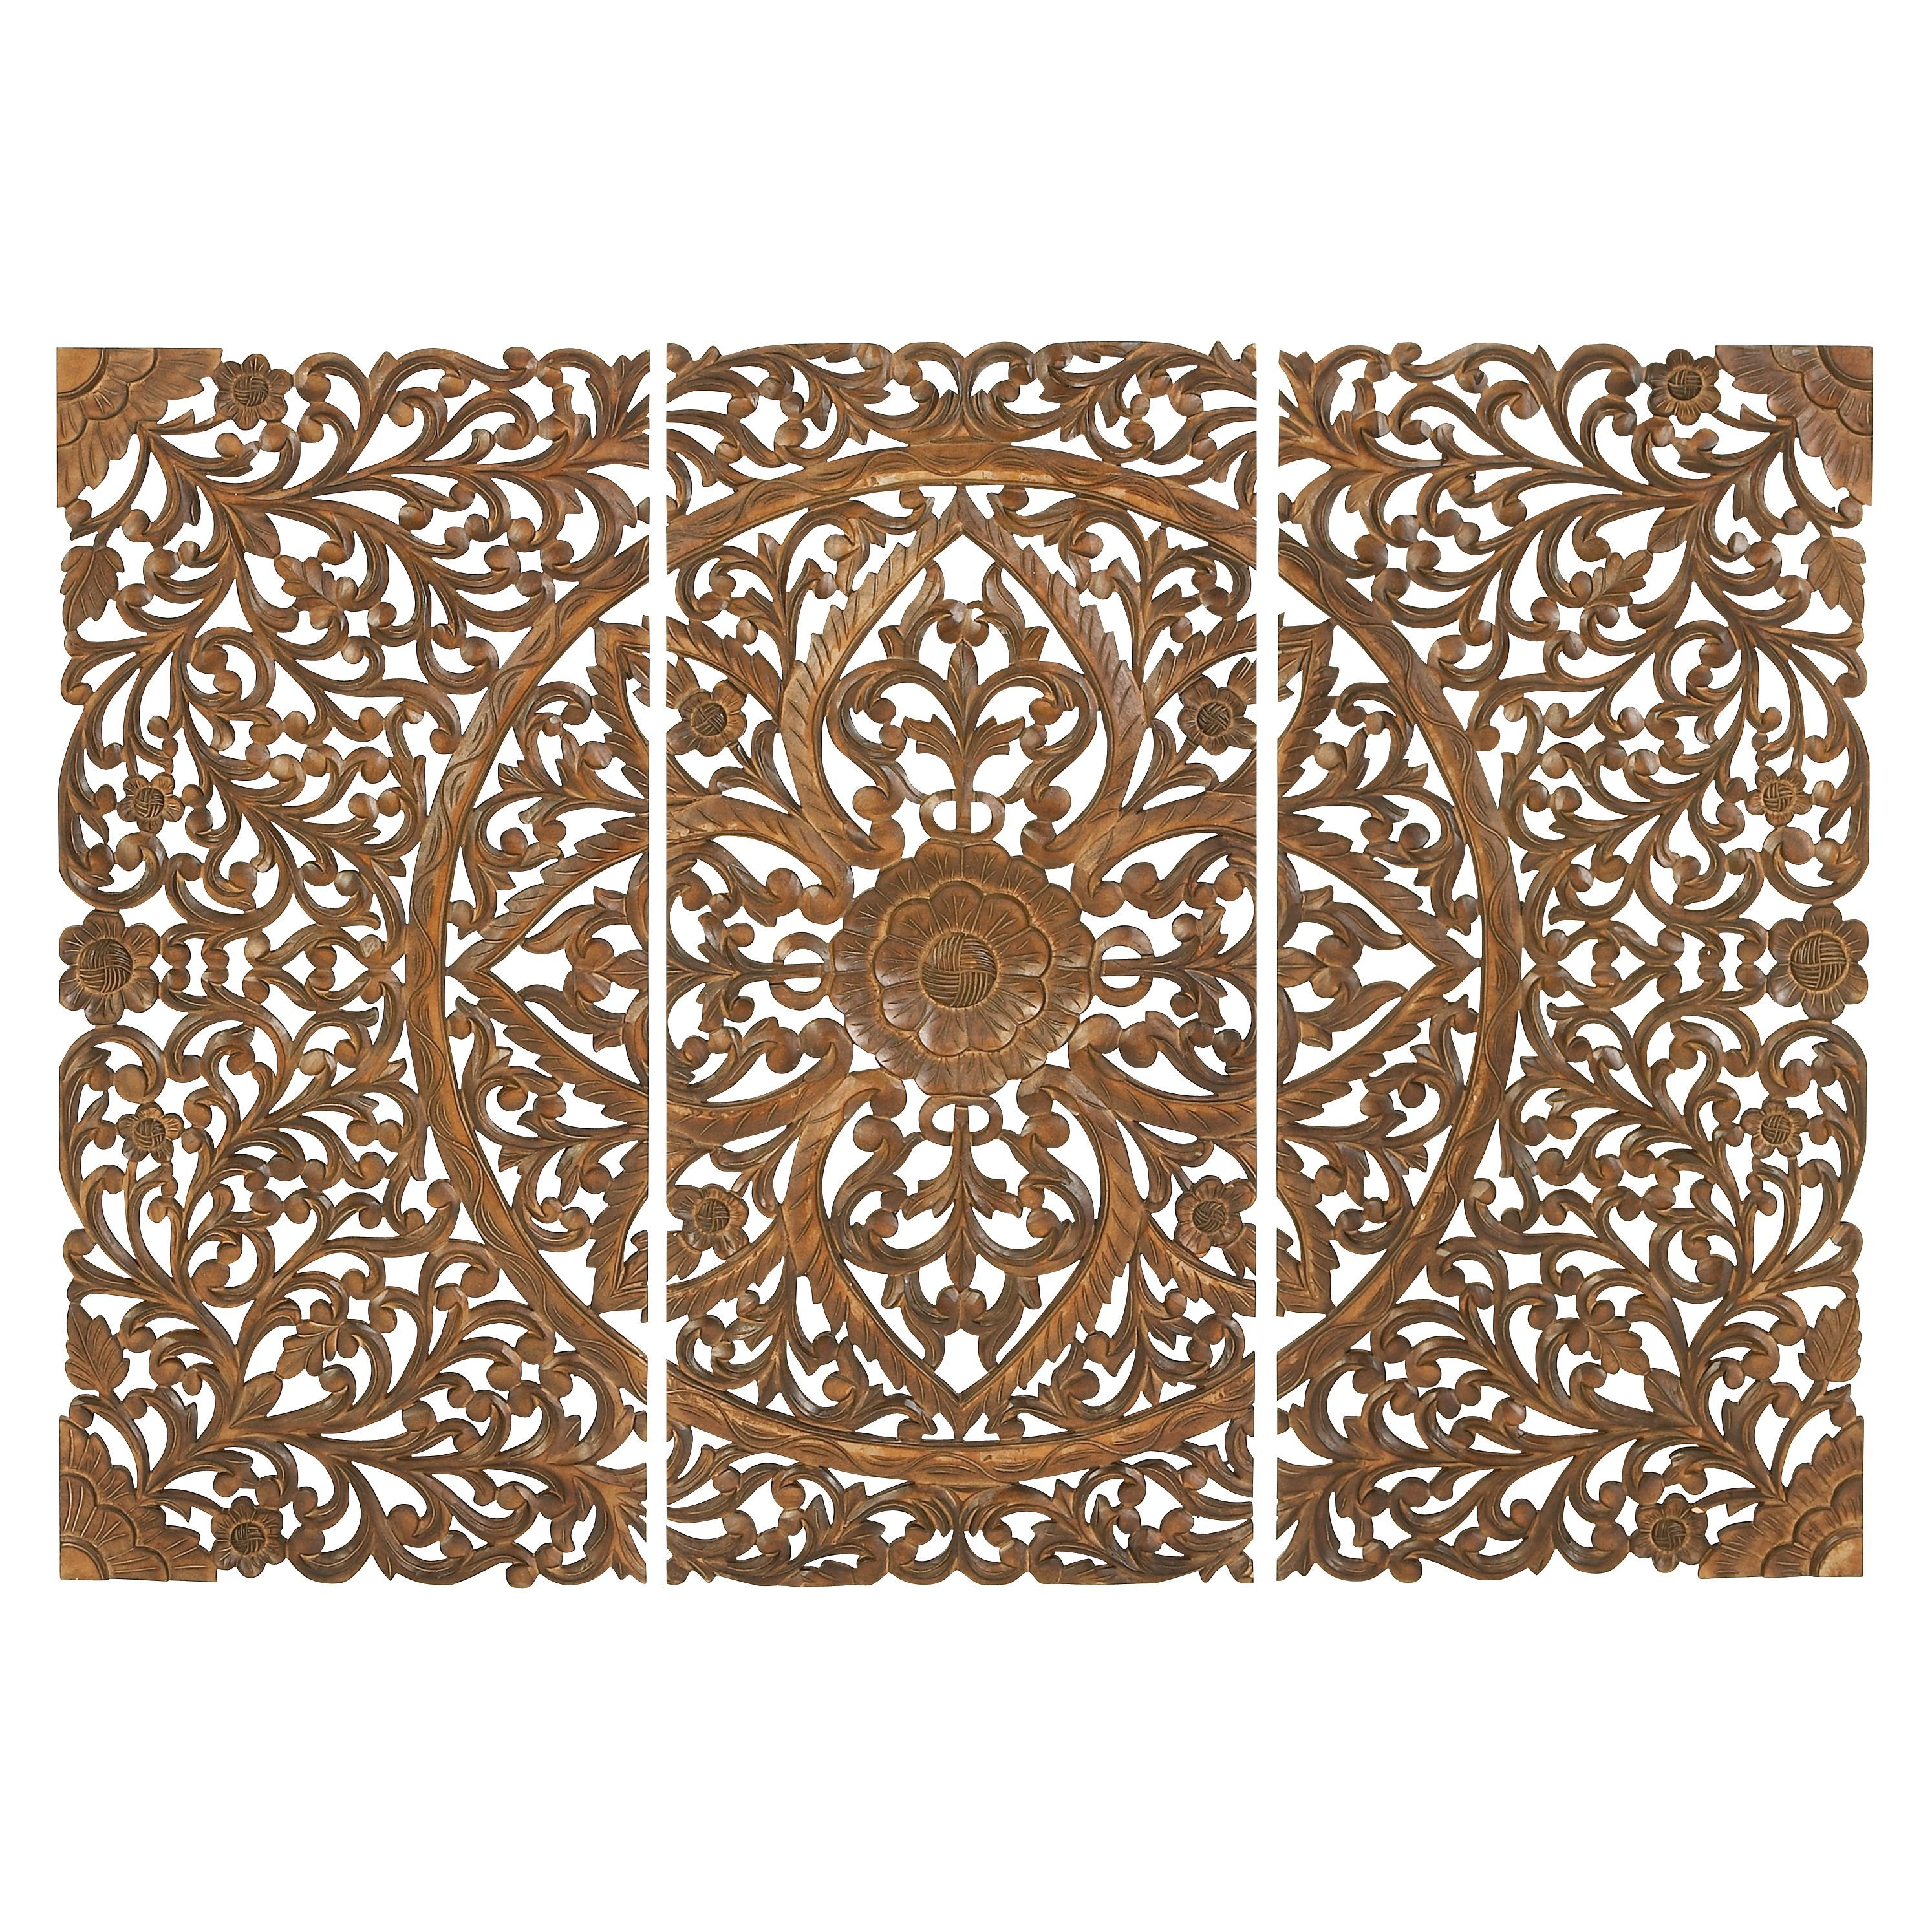 22 X 48 Set Of 3 Hand Carved Brown Wood Wall Panels By Studio 350